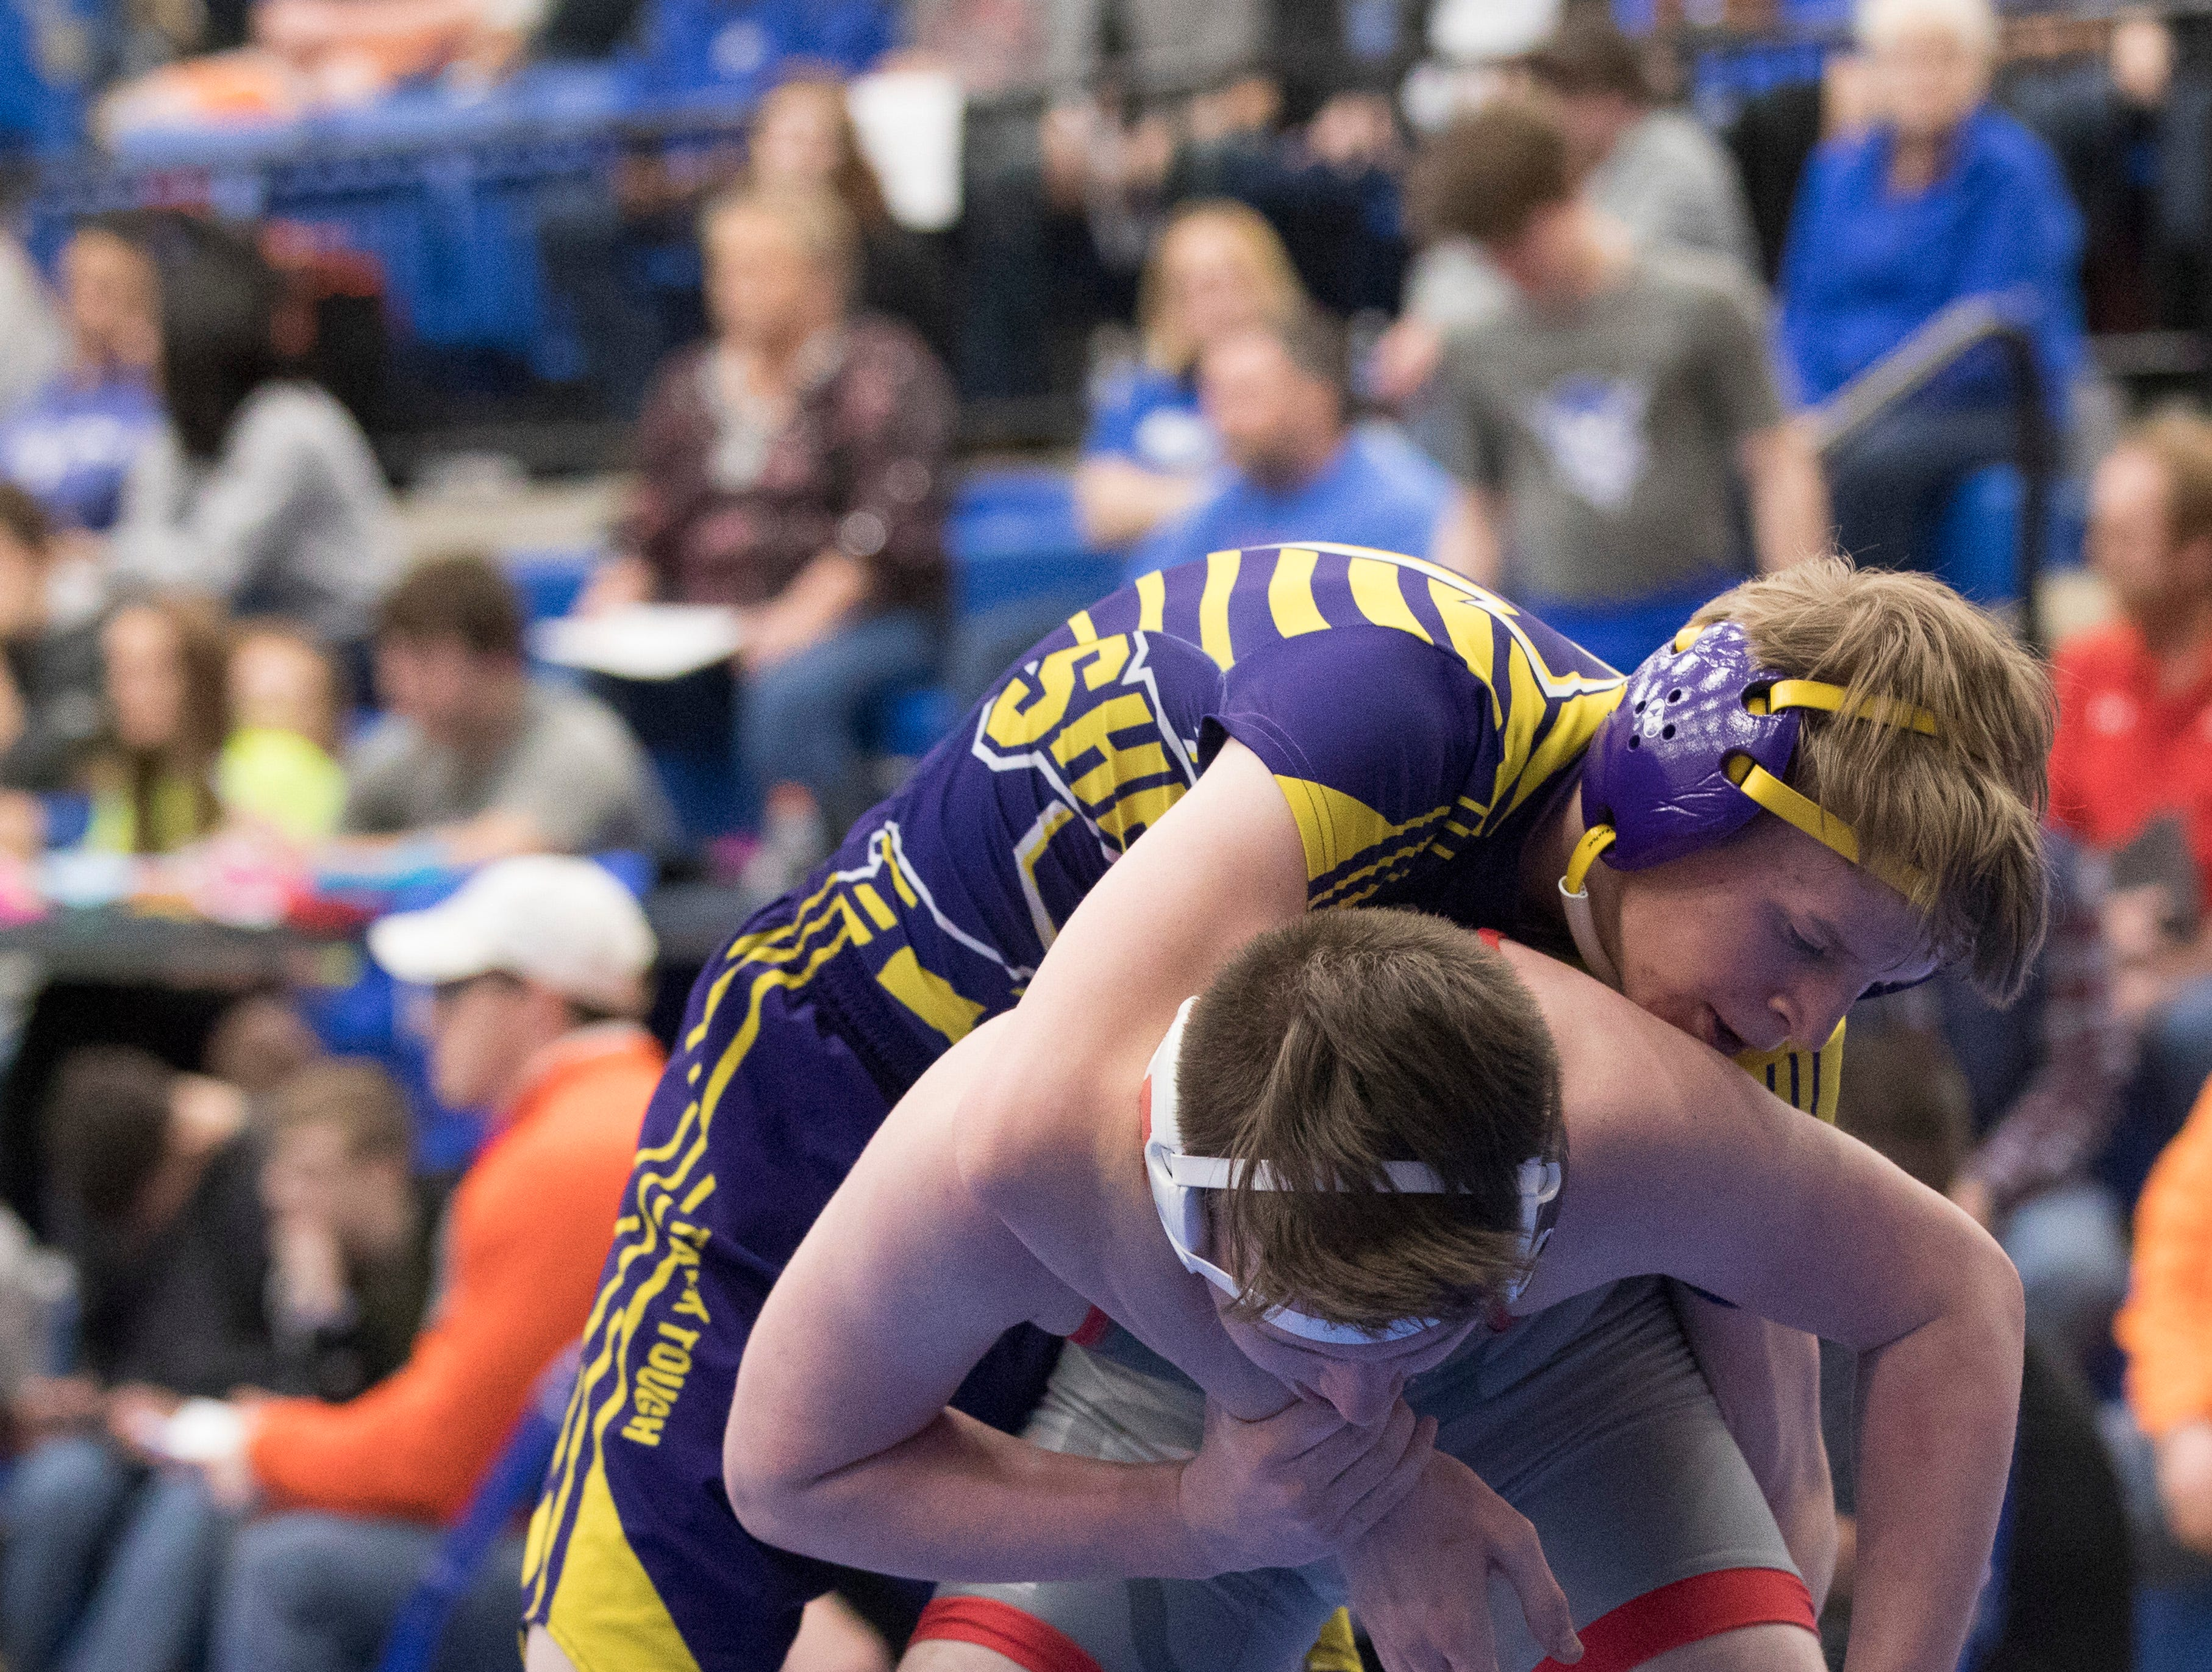 Zane Trace, Unioto, and Southeastern wrestlers competed at the Skyline Bowling Wrestling Invitational at Gallia Academy on December 29, 2018. The invitational had 26 teams compete with Zane Trace taking second, Unioto taking 15th, and Southeastern taking 18th overall.